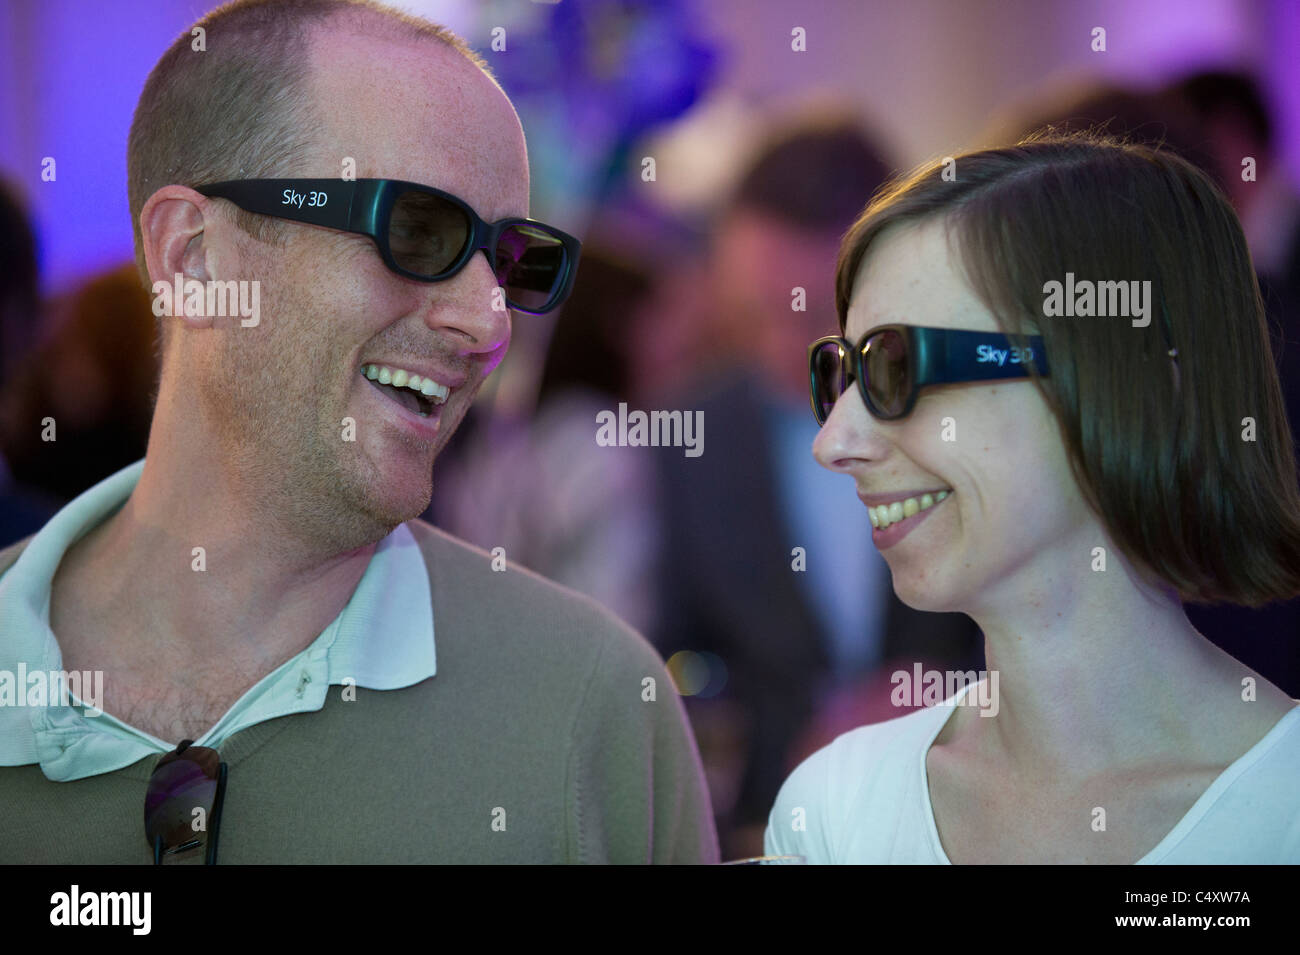 2ed5533f7b4 wearing 3D glasses watching tv television Stock Photo  37469918 - Alamy